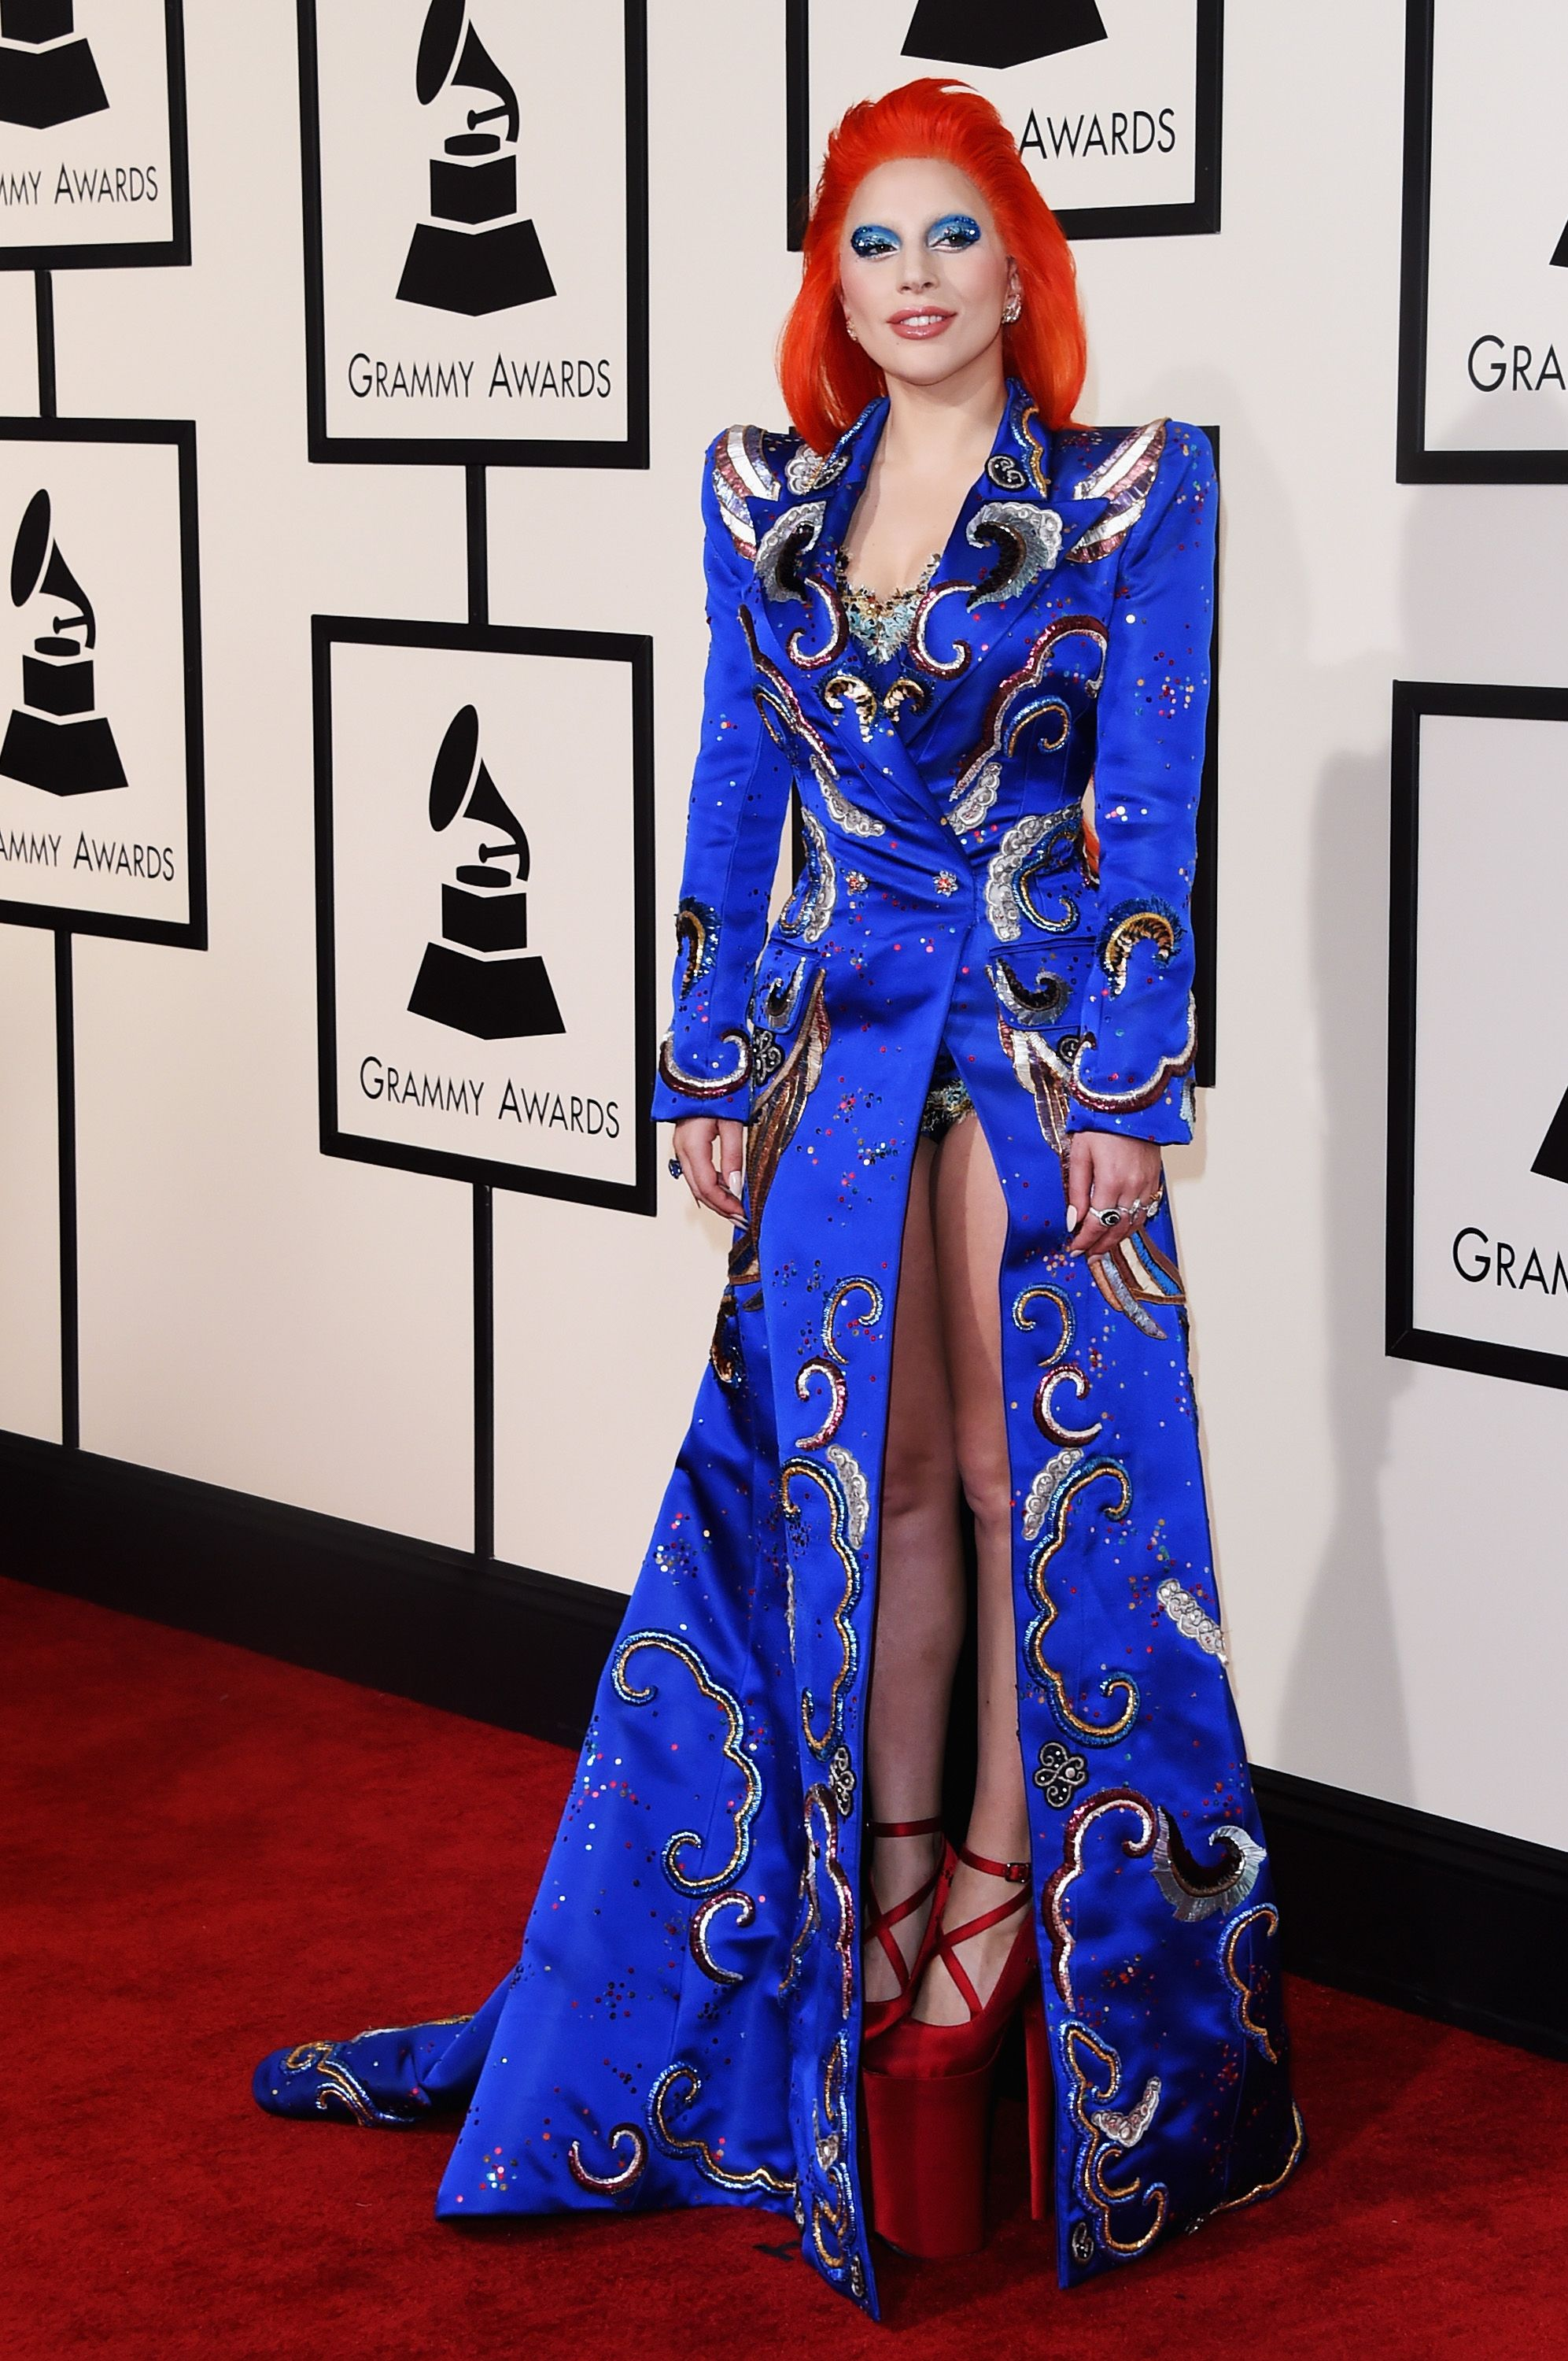 Grammys Red Carpet 2016 - Pictures from 2016 Grammys Red Carpet